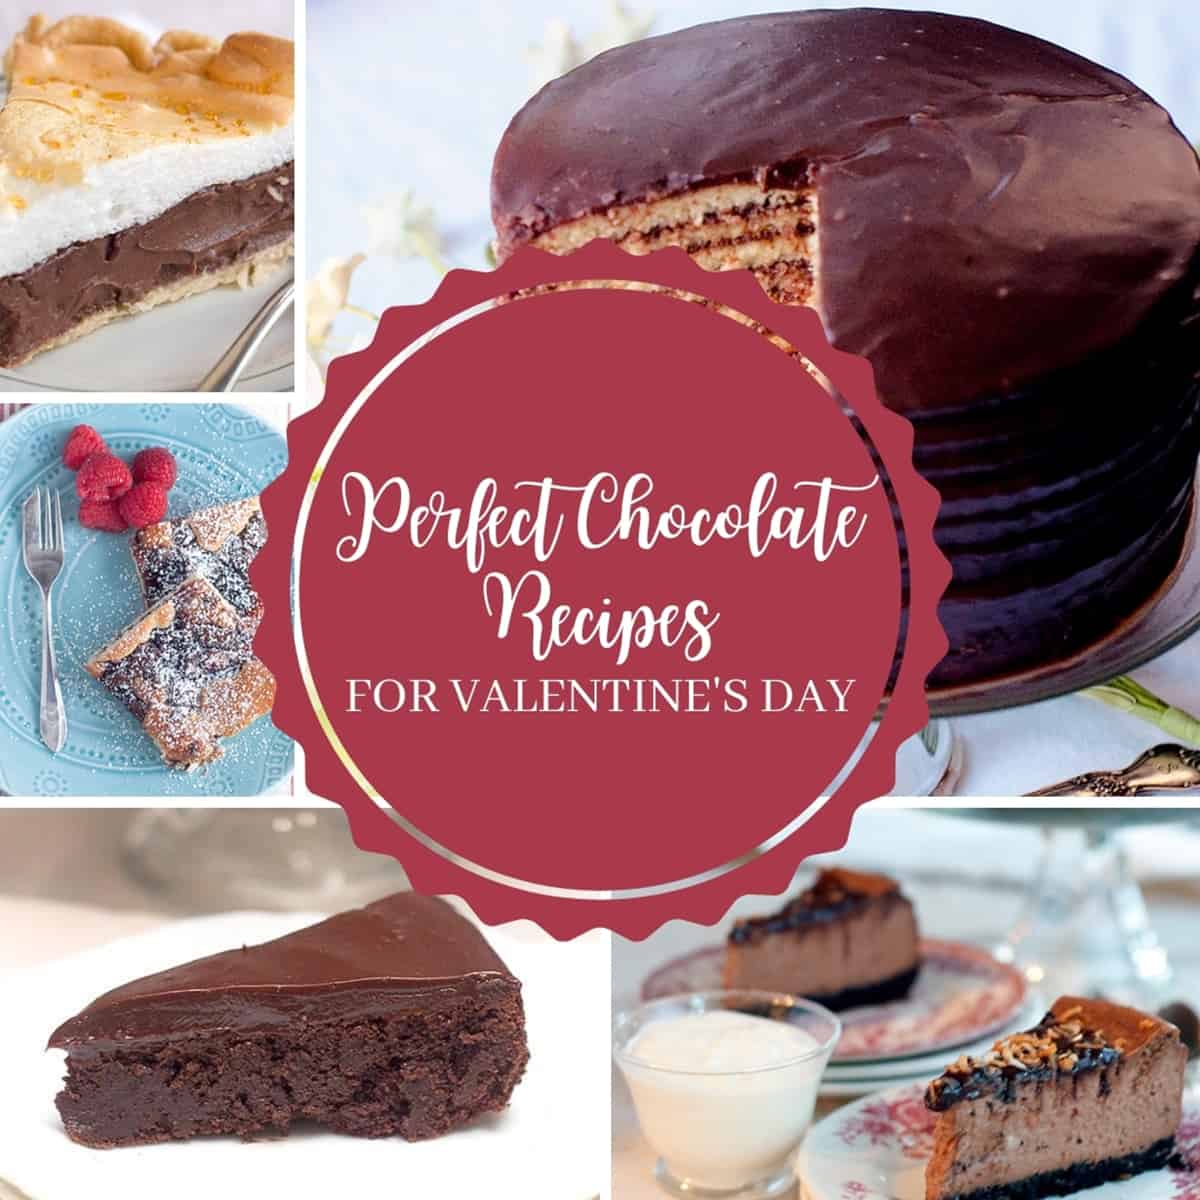 Photo collage of several chocolate desserts with text: Perfect Chocolate Recipes for Valentine's Day